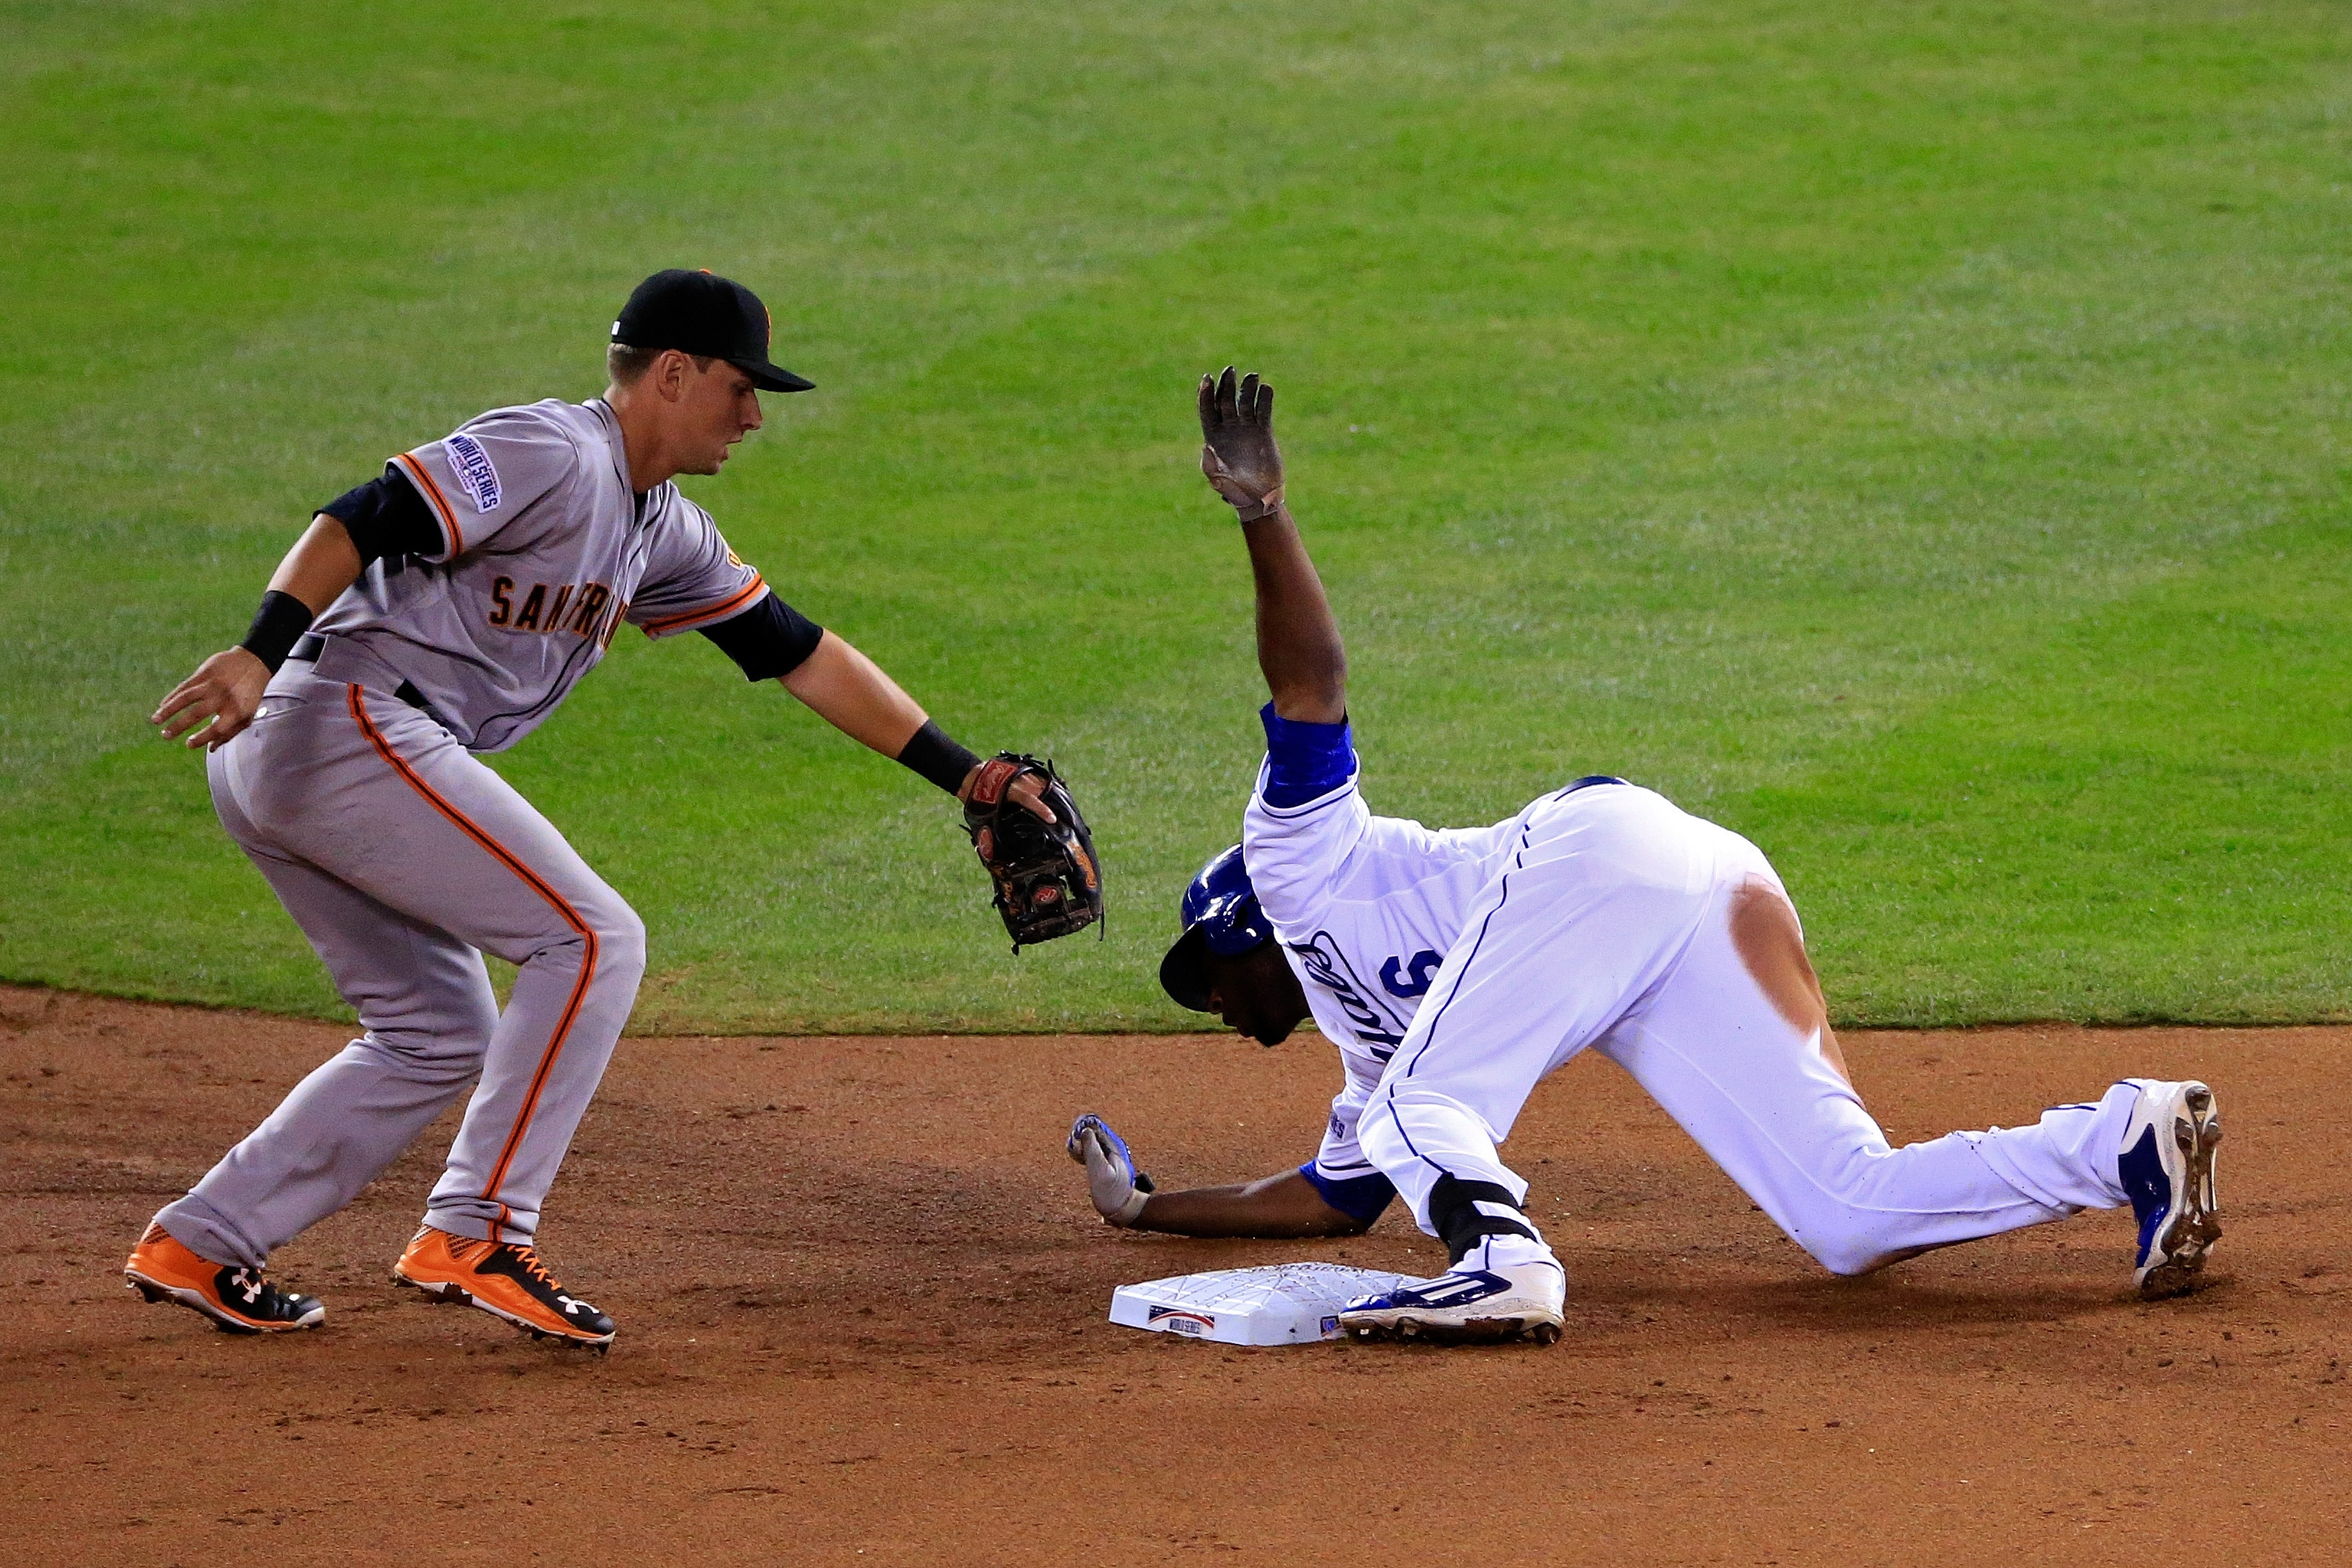 Giants second baseman Joe Panik tries to make a play against Lorenzo Cain of the Royals in Game Two on Wednesday night.